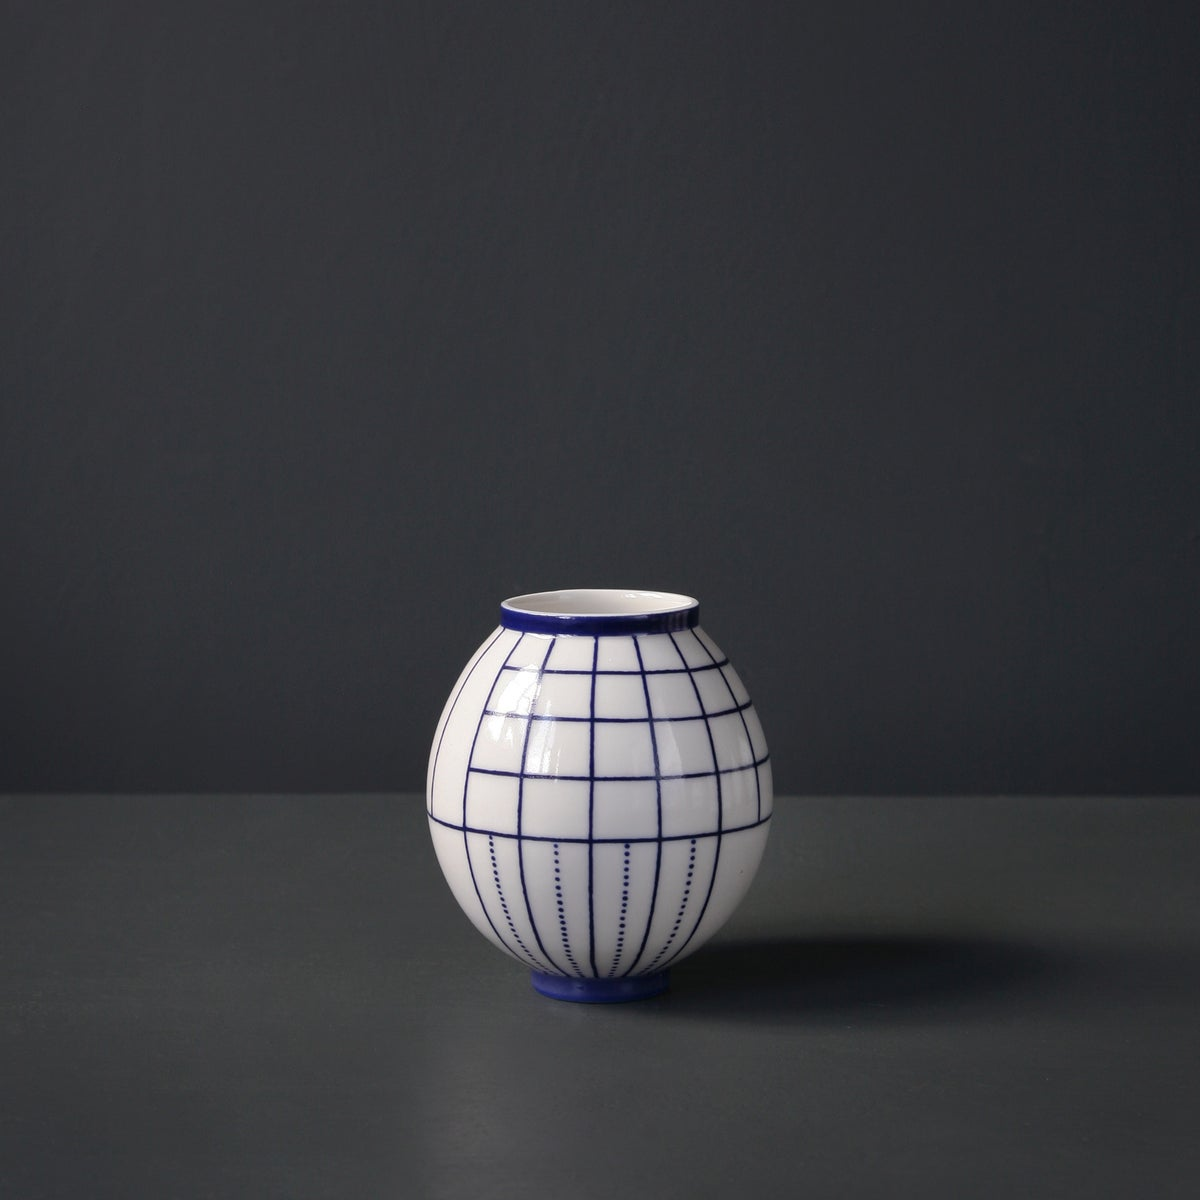 Image of 'Geometric' Moon Jar by Rhian Malin.